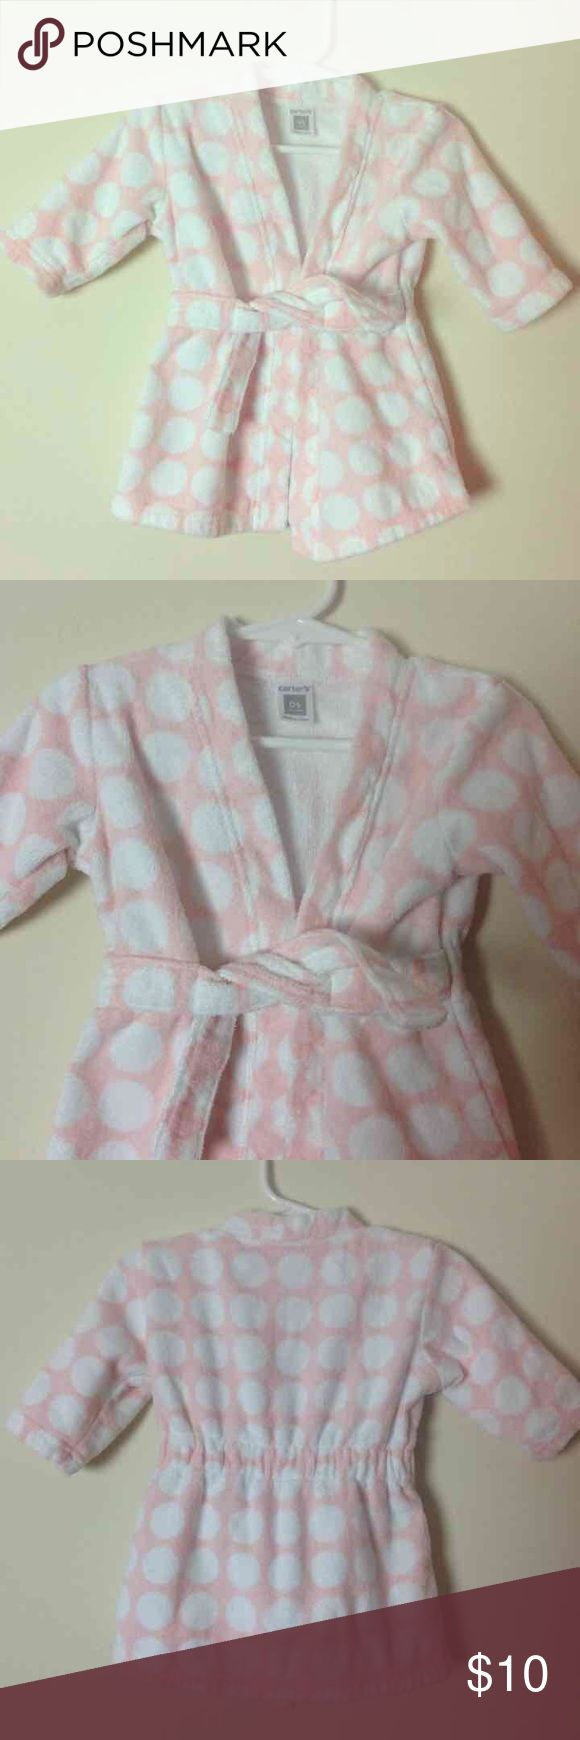 NWOT Adorable Carters Baby Girl Robe- One Size NWOT Adorable Carters Baby Girl Robe- One Size Carter's Pajamas Robes